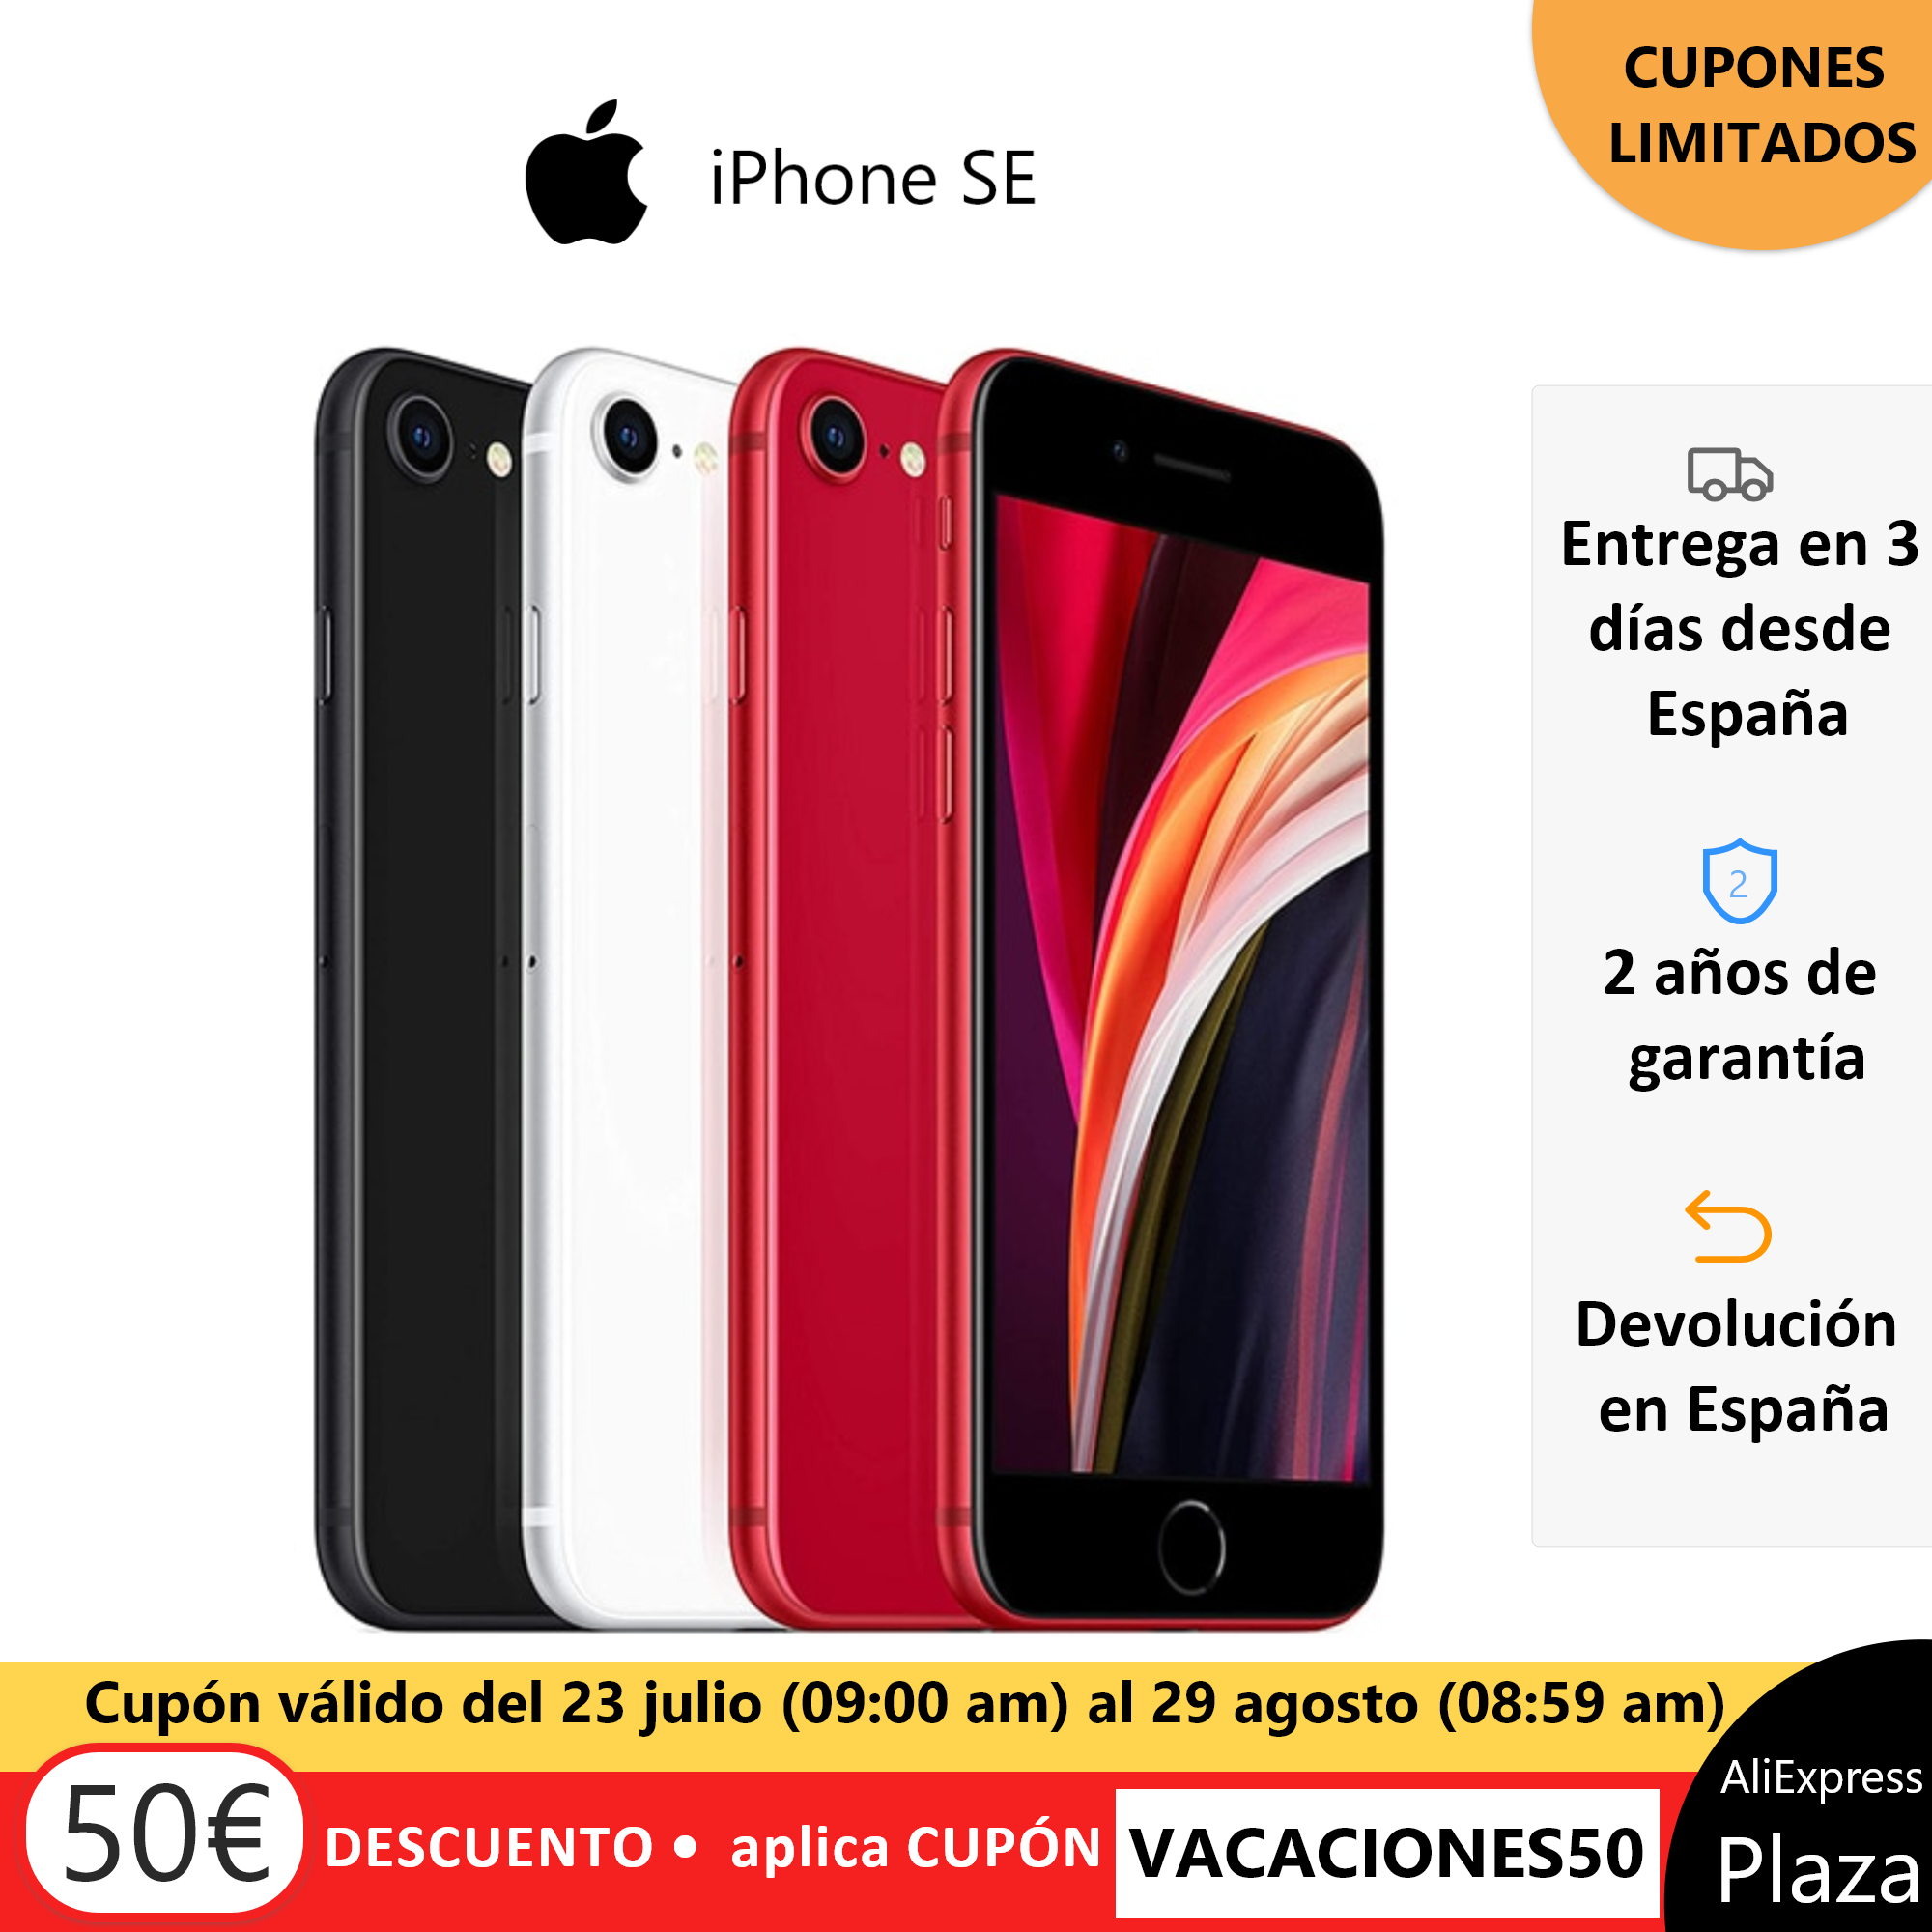 New Apple iPhone SE 64GB 128GB 256GB in Black White Red 4.7-inch HD Retina Display 12MP Camera 7MP Front Camera Chip A13 Bionic